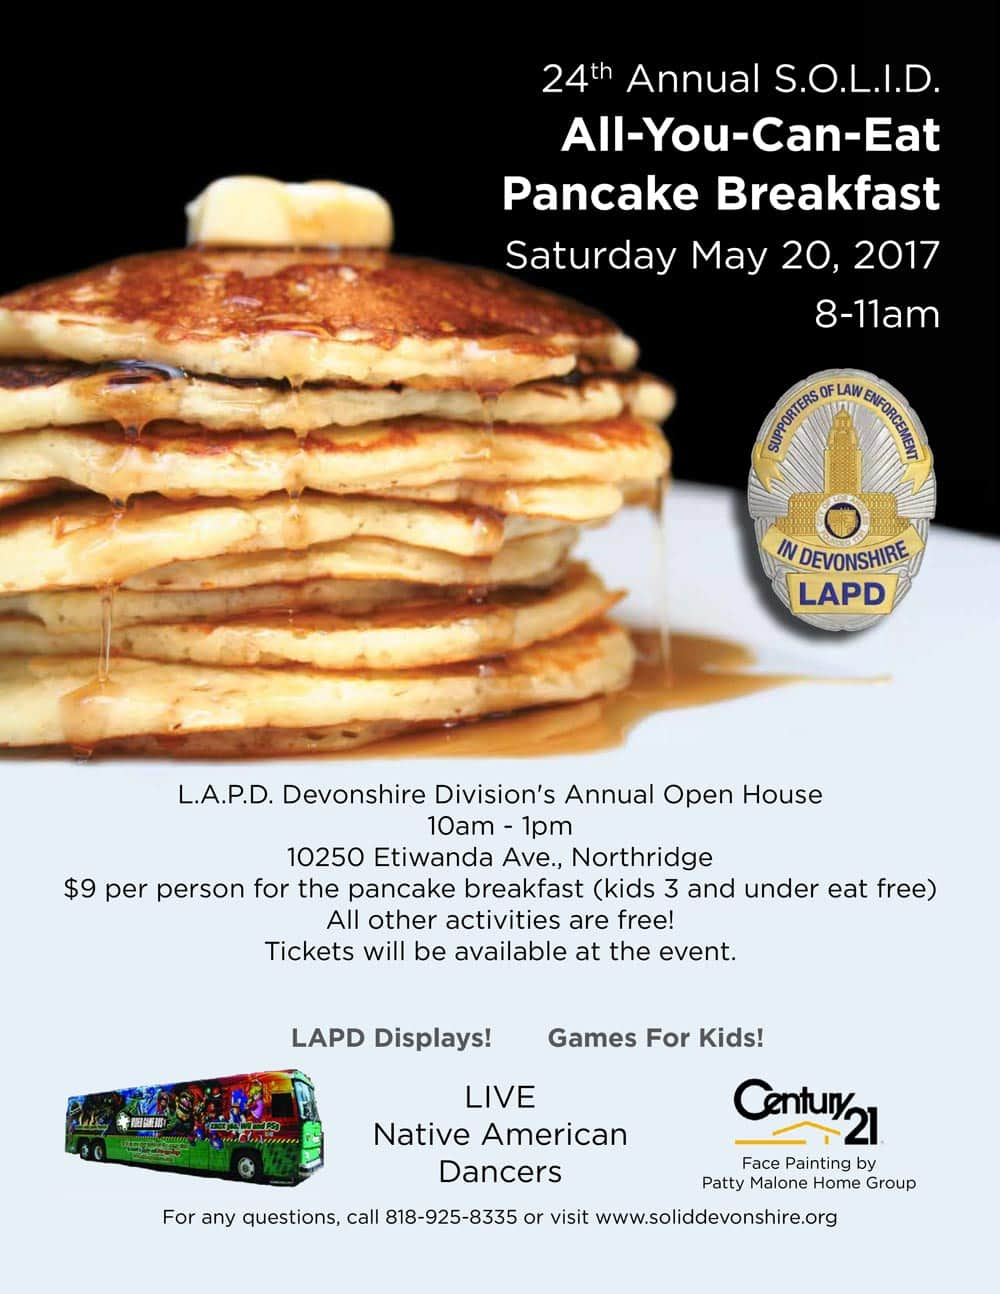 24th Annual SOLID All-You-Can-Eat Pancake Breakfast